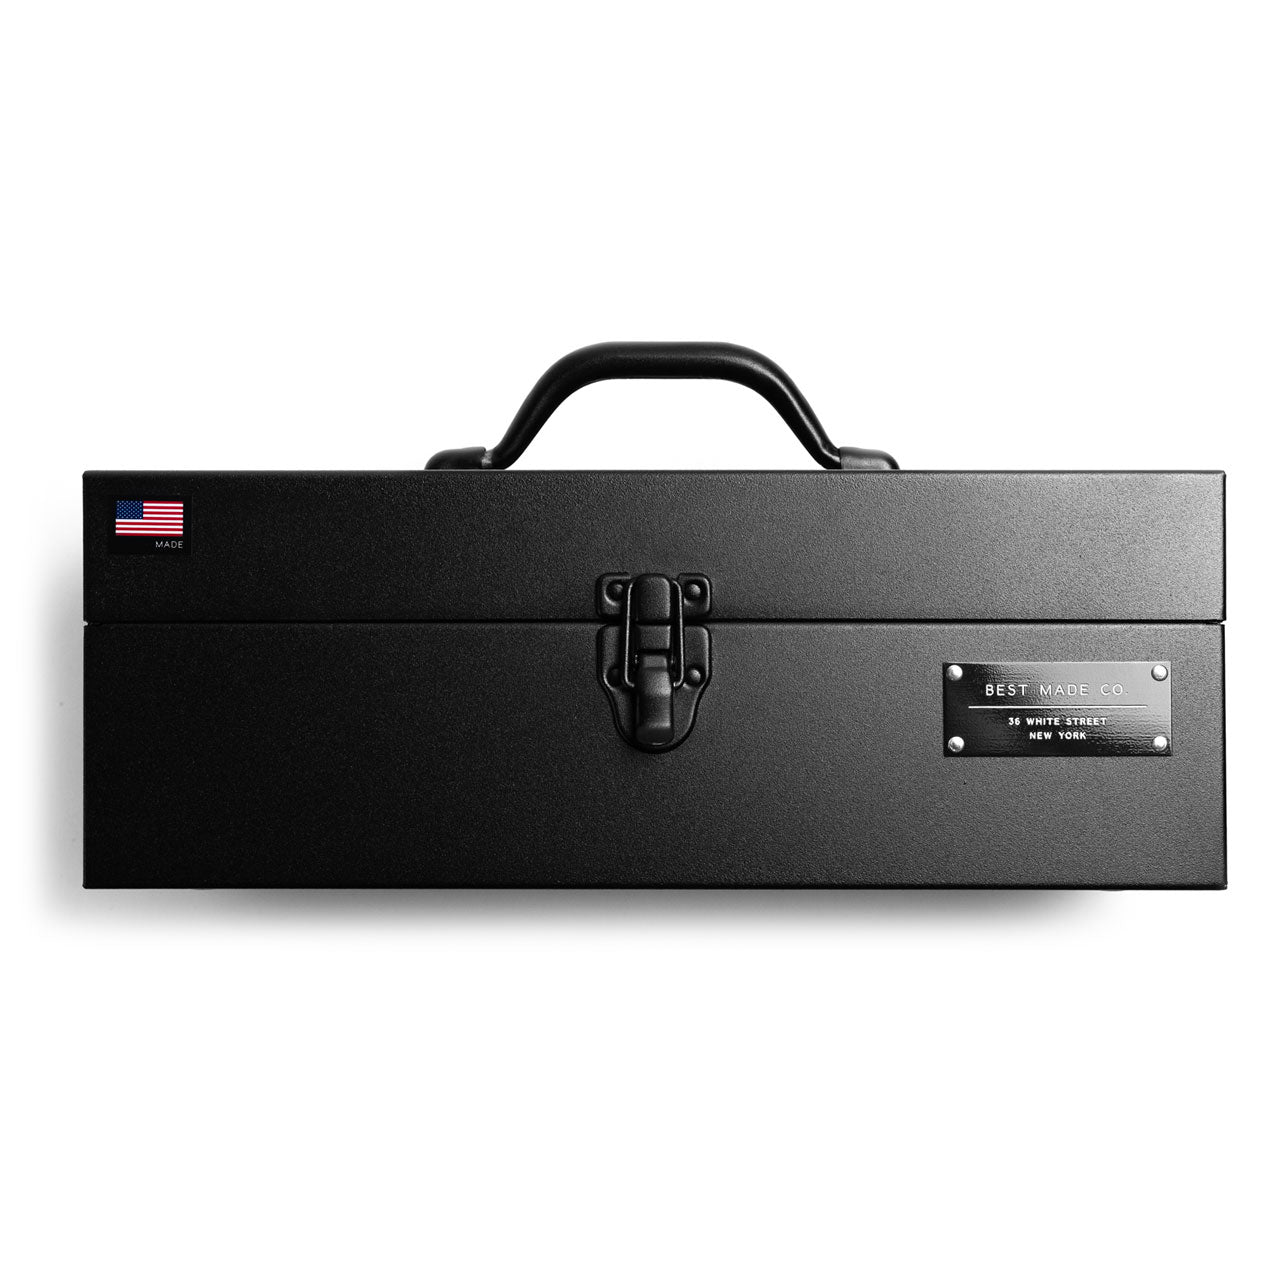 Best Made Co. Tool Box